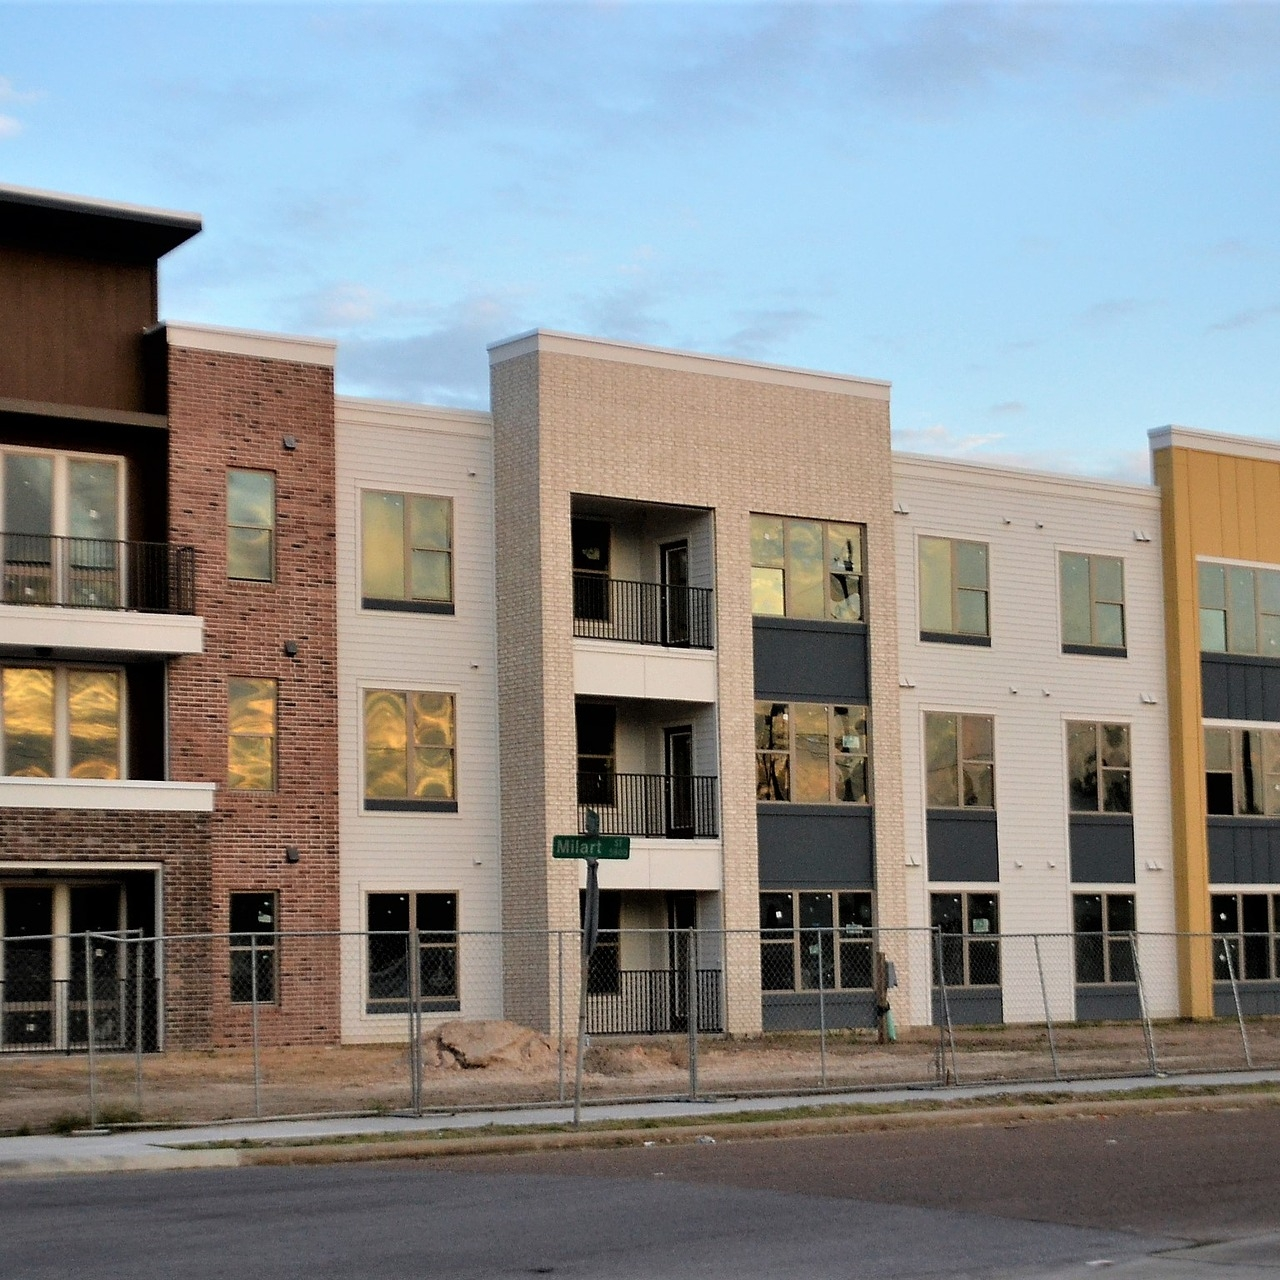 affordable Housing - We manage 9 apartment complexes with more than 300 units - 6 for individuals and families, 3 for seniors. All rents are below market rate, making the apartments very affordable.